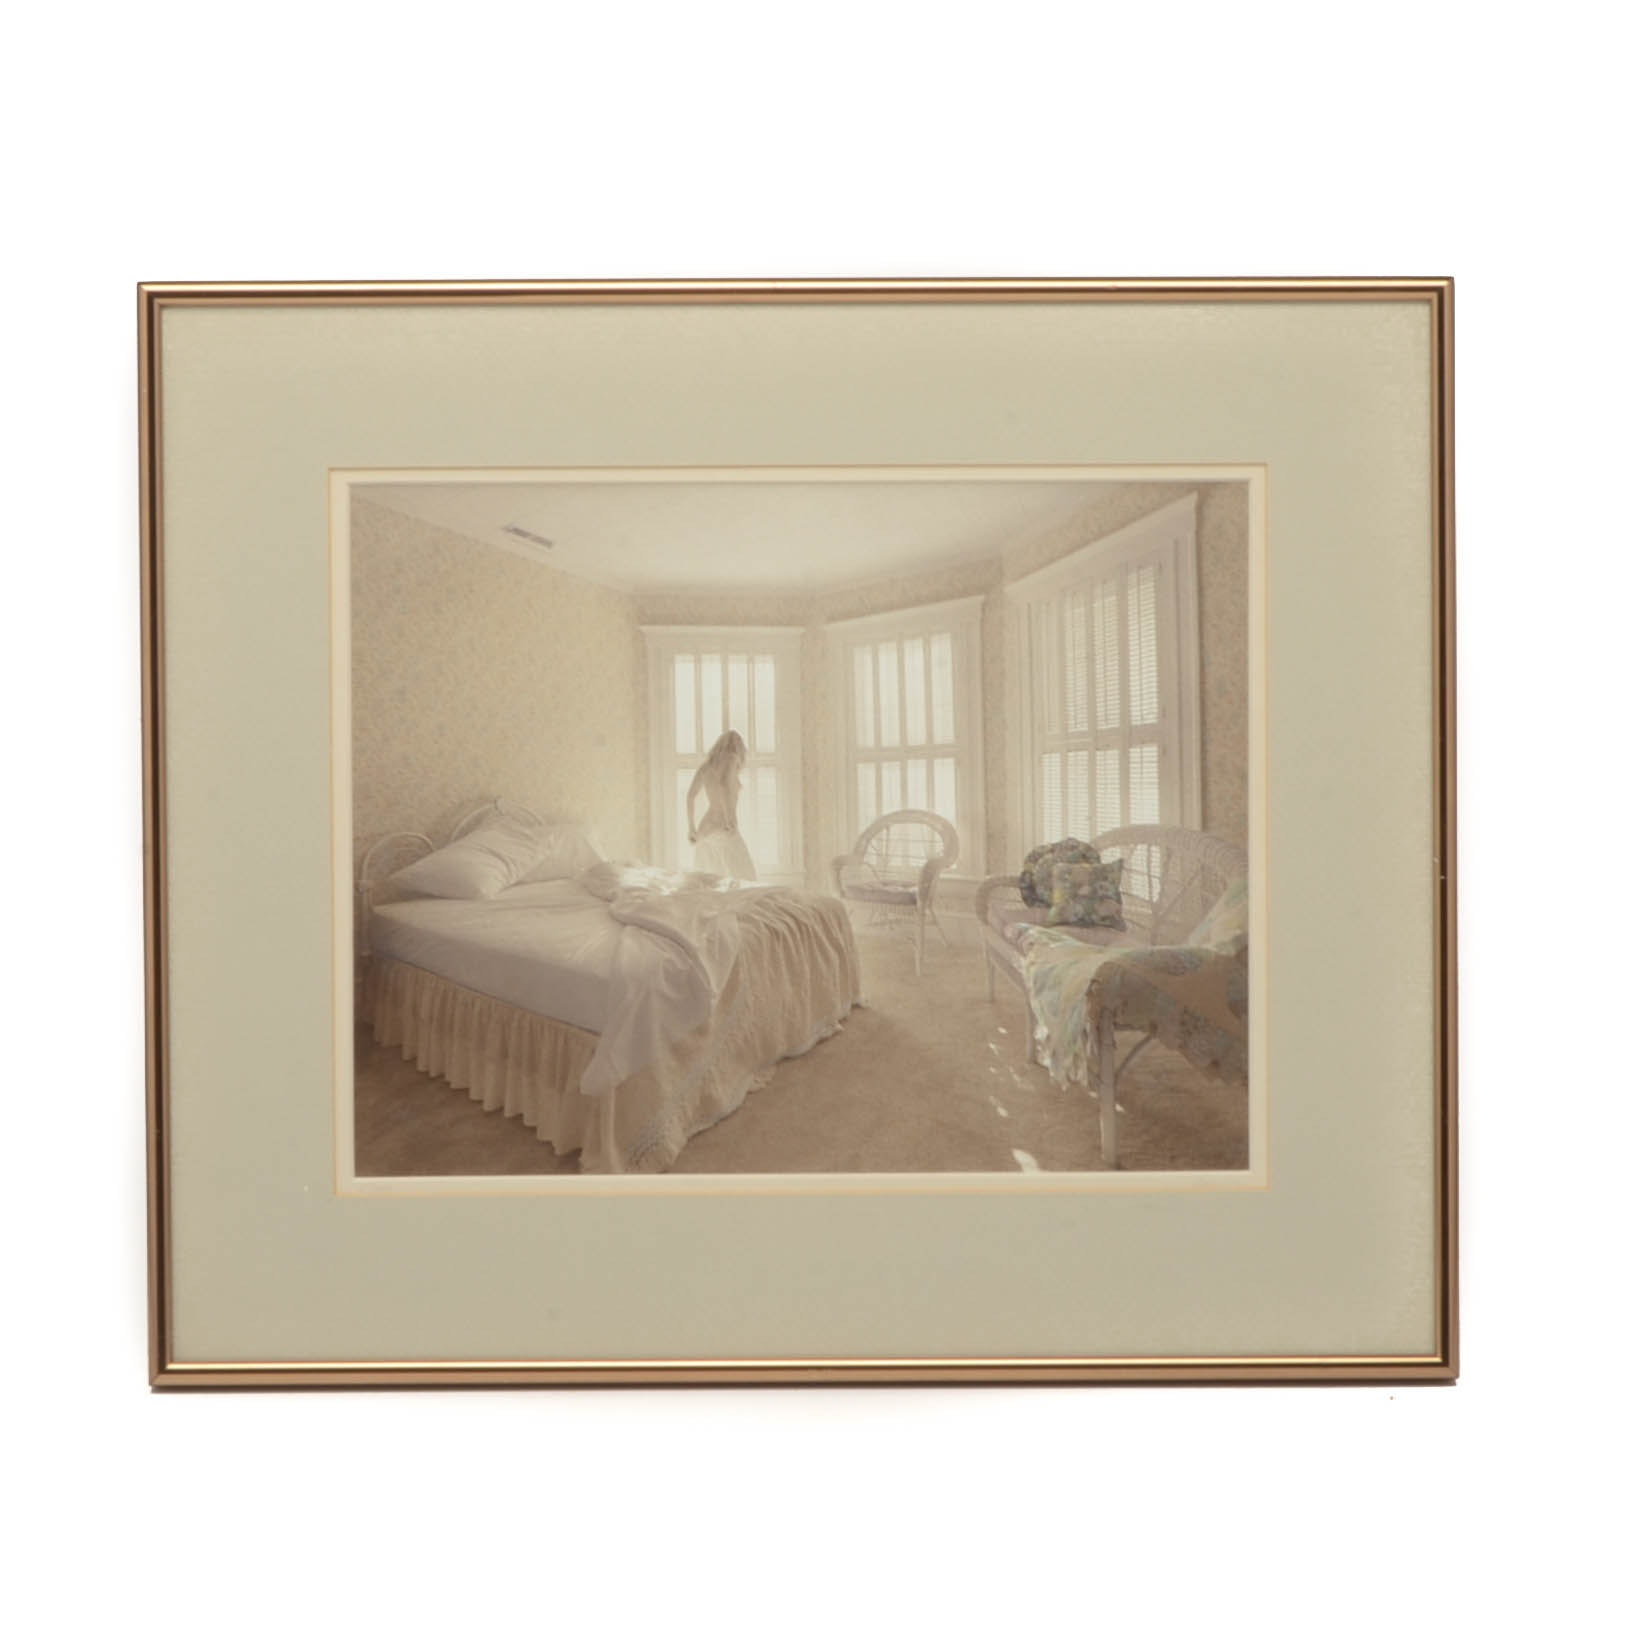 Norm Darwish Limited Edition Hand-colored Photograph of Woman in Interior